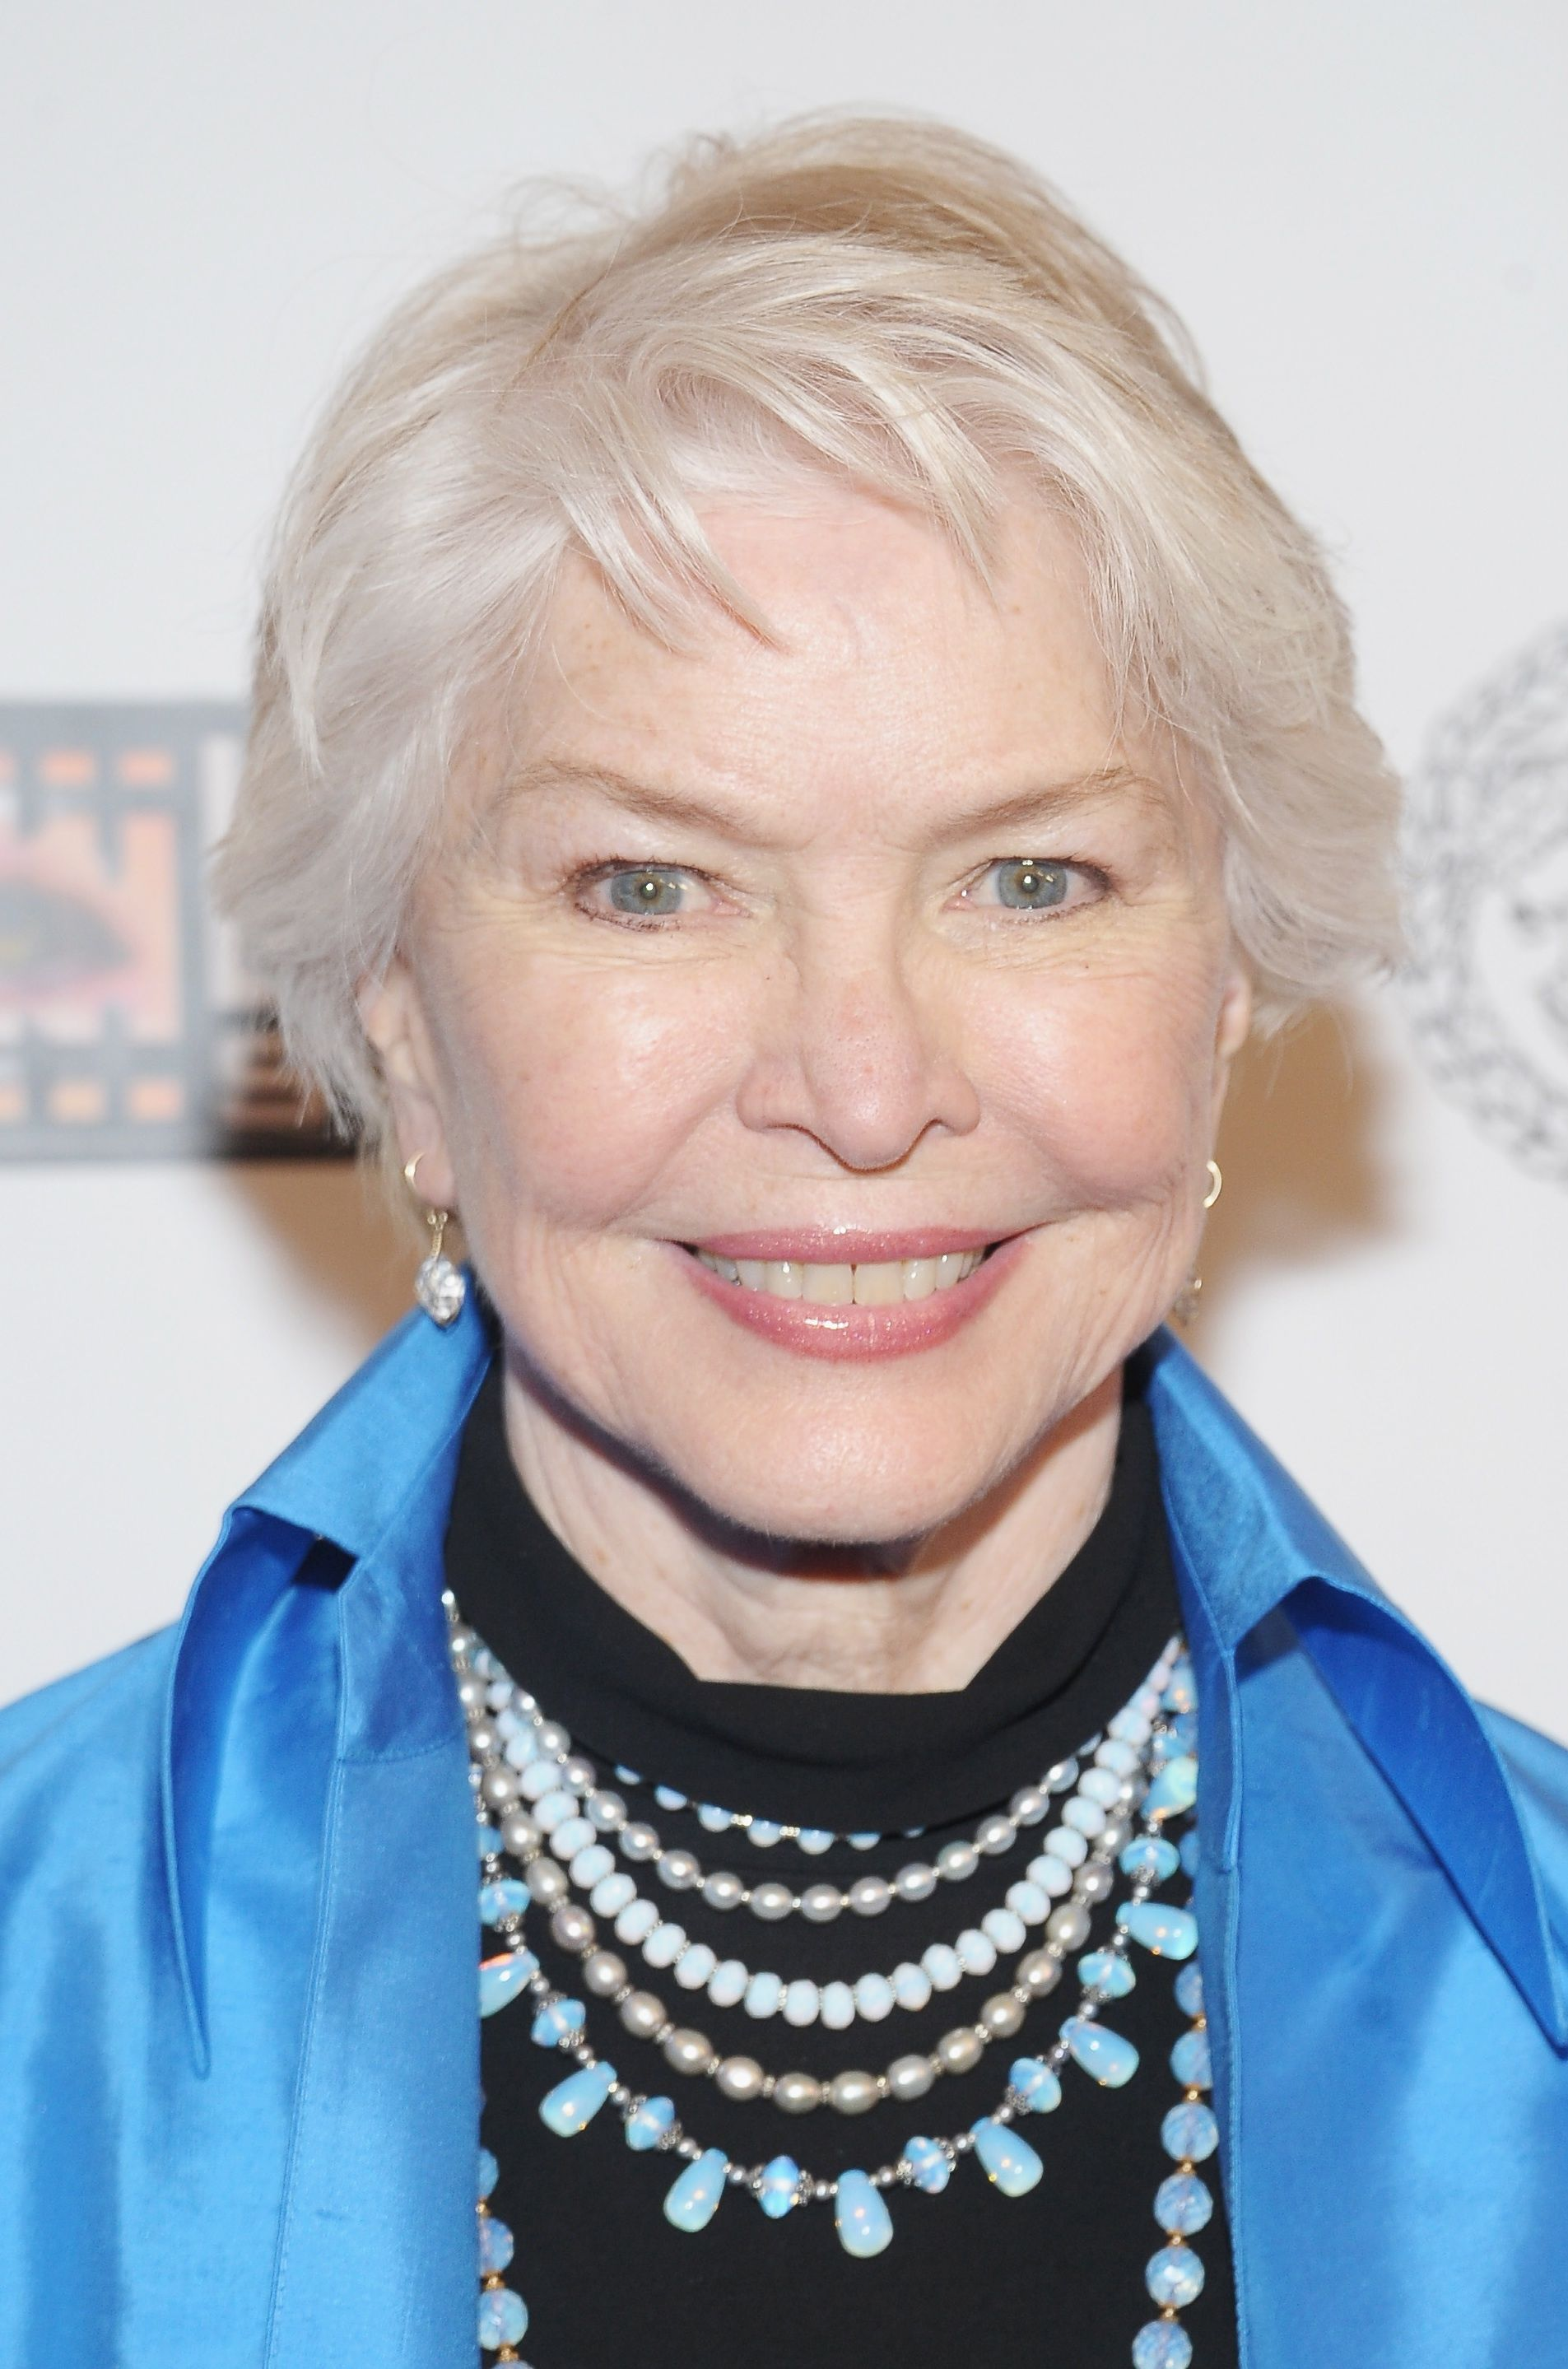 ellen burstynellen burstyn young, ellen burstyn oscar, ellen burstyn twitter, ellen burstyn wikipedia, ellen burstyn 2016, ellen burstyn height, ellen burstyn house of cards, ellen burstyn oscar requiem, ellen burstyn is she muslim, ellen burstyn oscar nomination, ellen burstyn, ellen burstyn requiem for a dream, ellen burstyn wiki, ellen burstyn exorcist, ellen burstyn interstellar, ellen burstyn resurrection, ellen burstyn 2015, ellen burstyn monologue, ellen burstyn photos, ellen burstyn actress